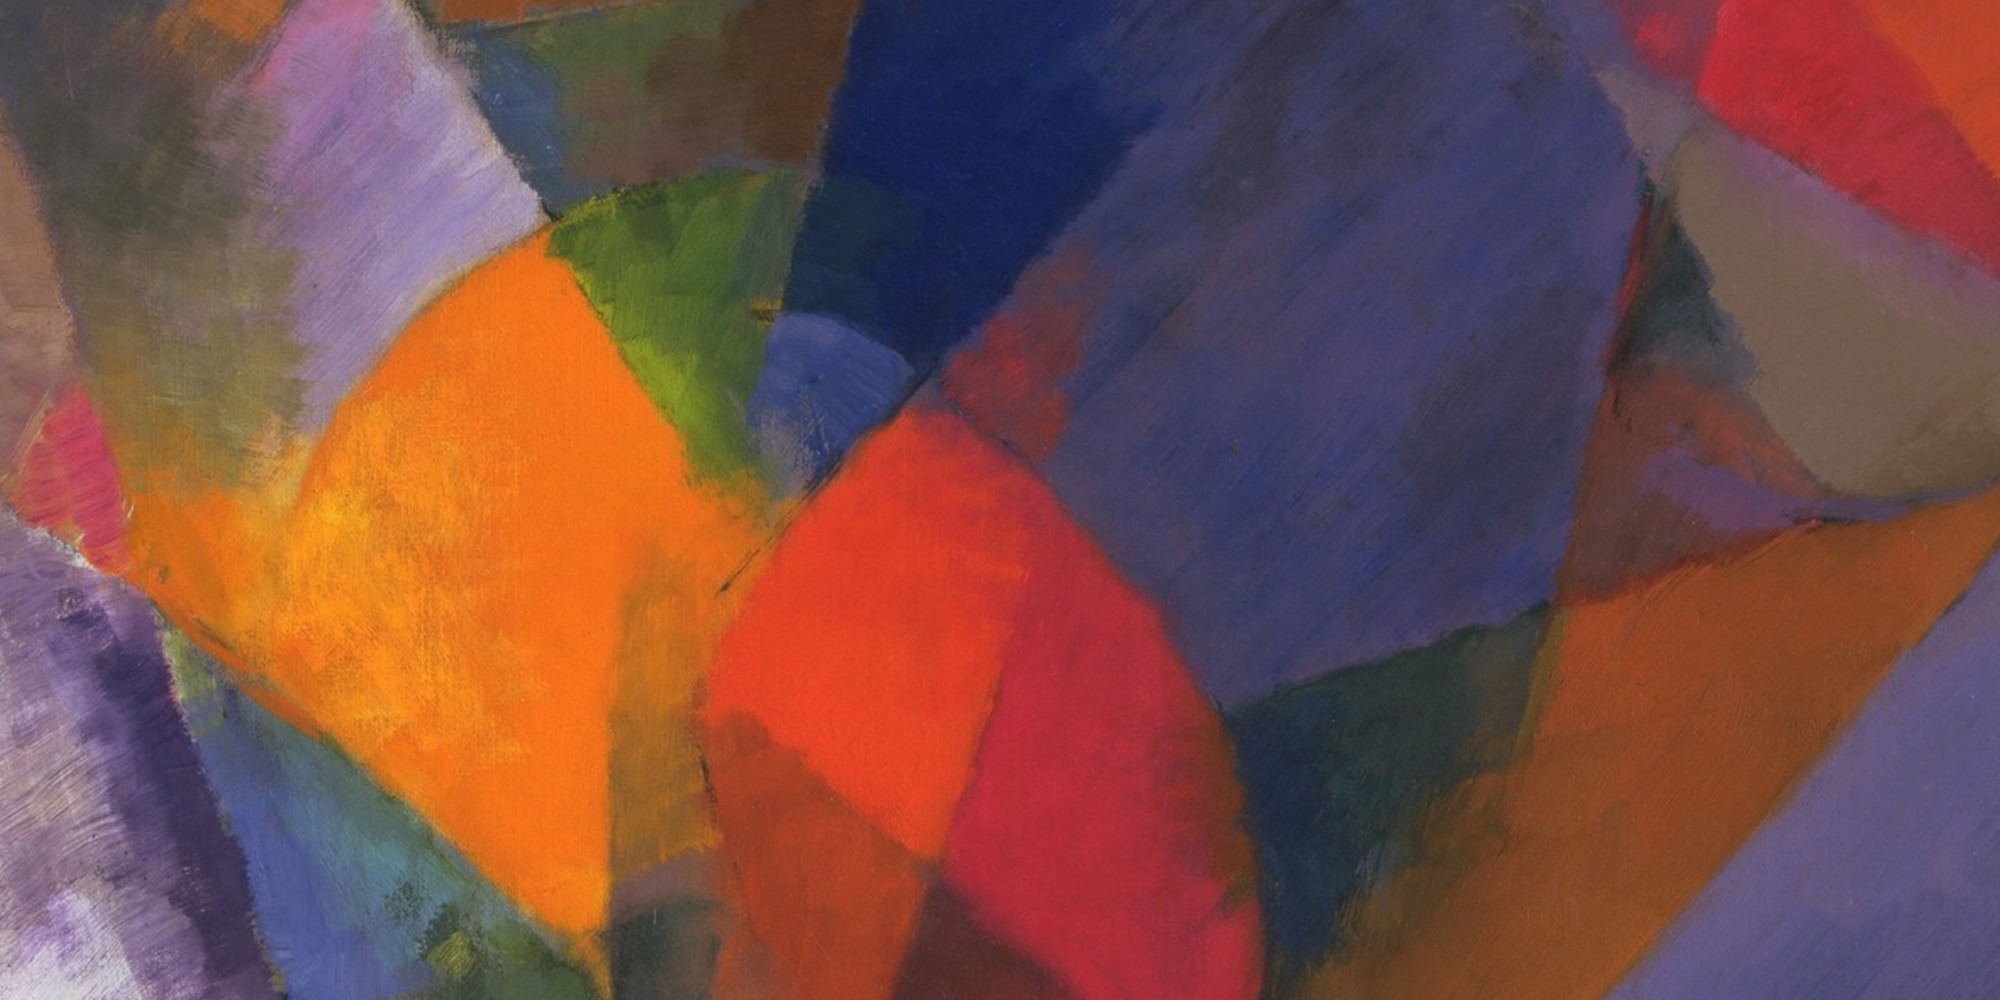 "Stanton Macdonald-Wright. Synchromy. 1917. Oil on canvas, 31 x 24"" (78.8 x 61 cm). Given anonymously"